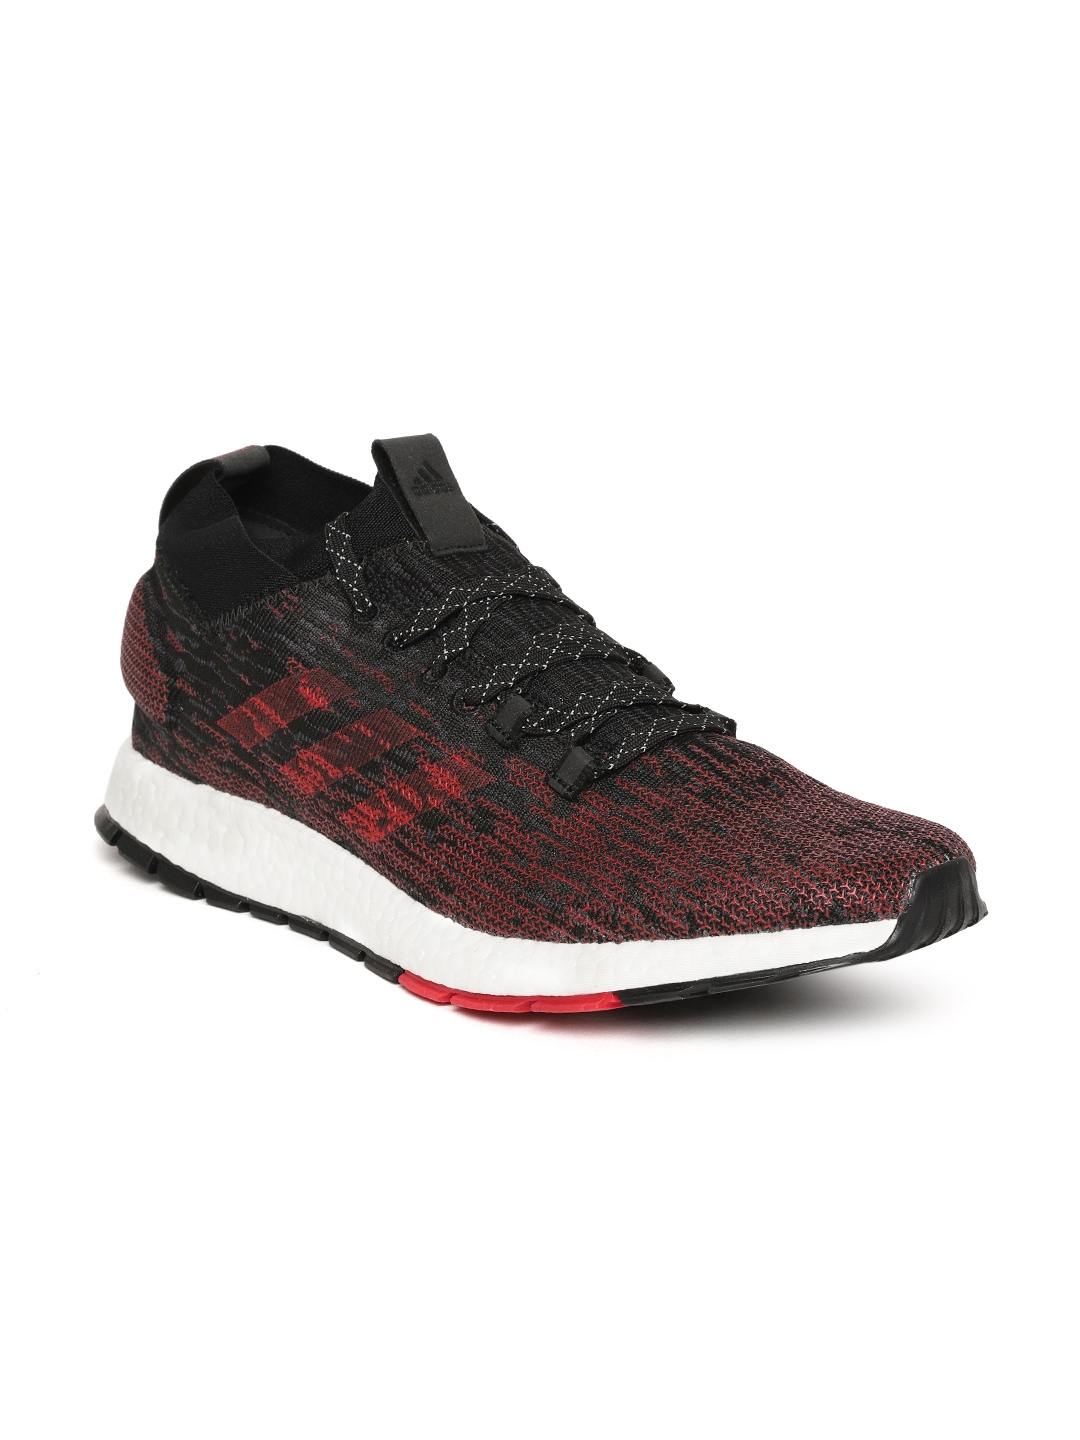 f16f34bf8 Buy ADIDAS Men Red   Black Pureboost RBL Running Shoes - Sports ...